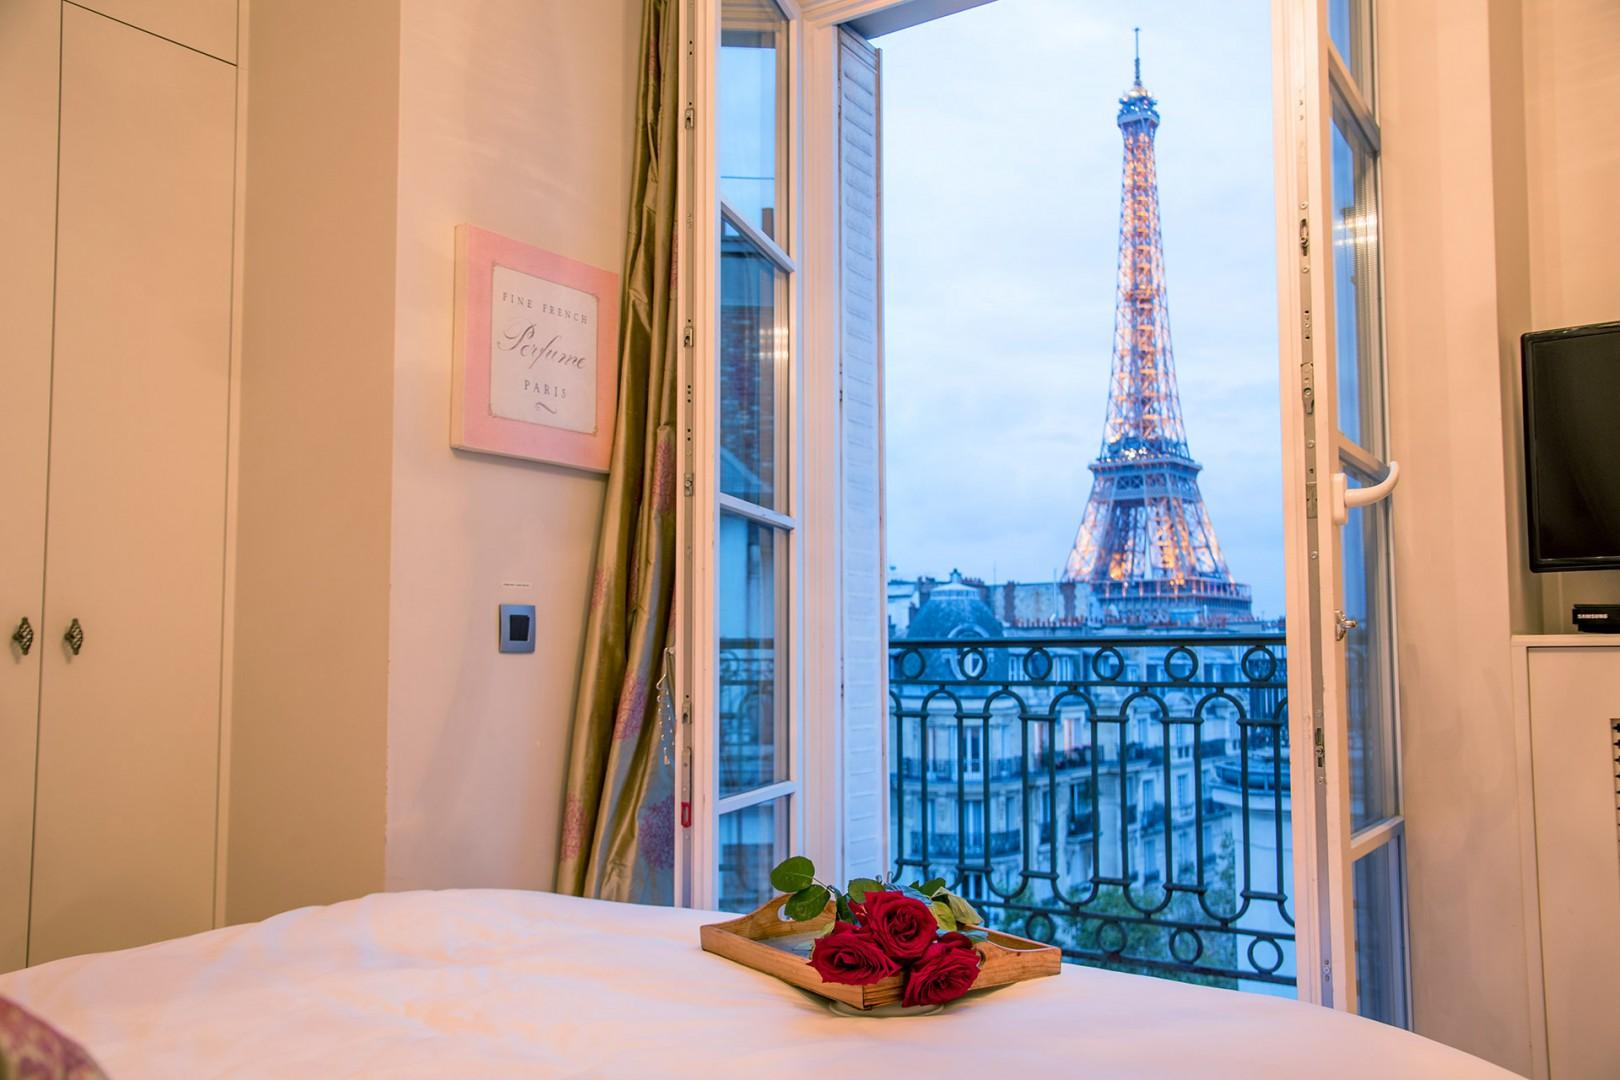 Watch the sunset and the Eiffel Tower light up at night right from your bed!